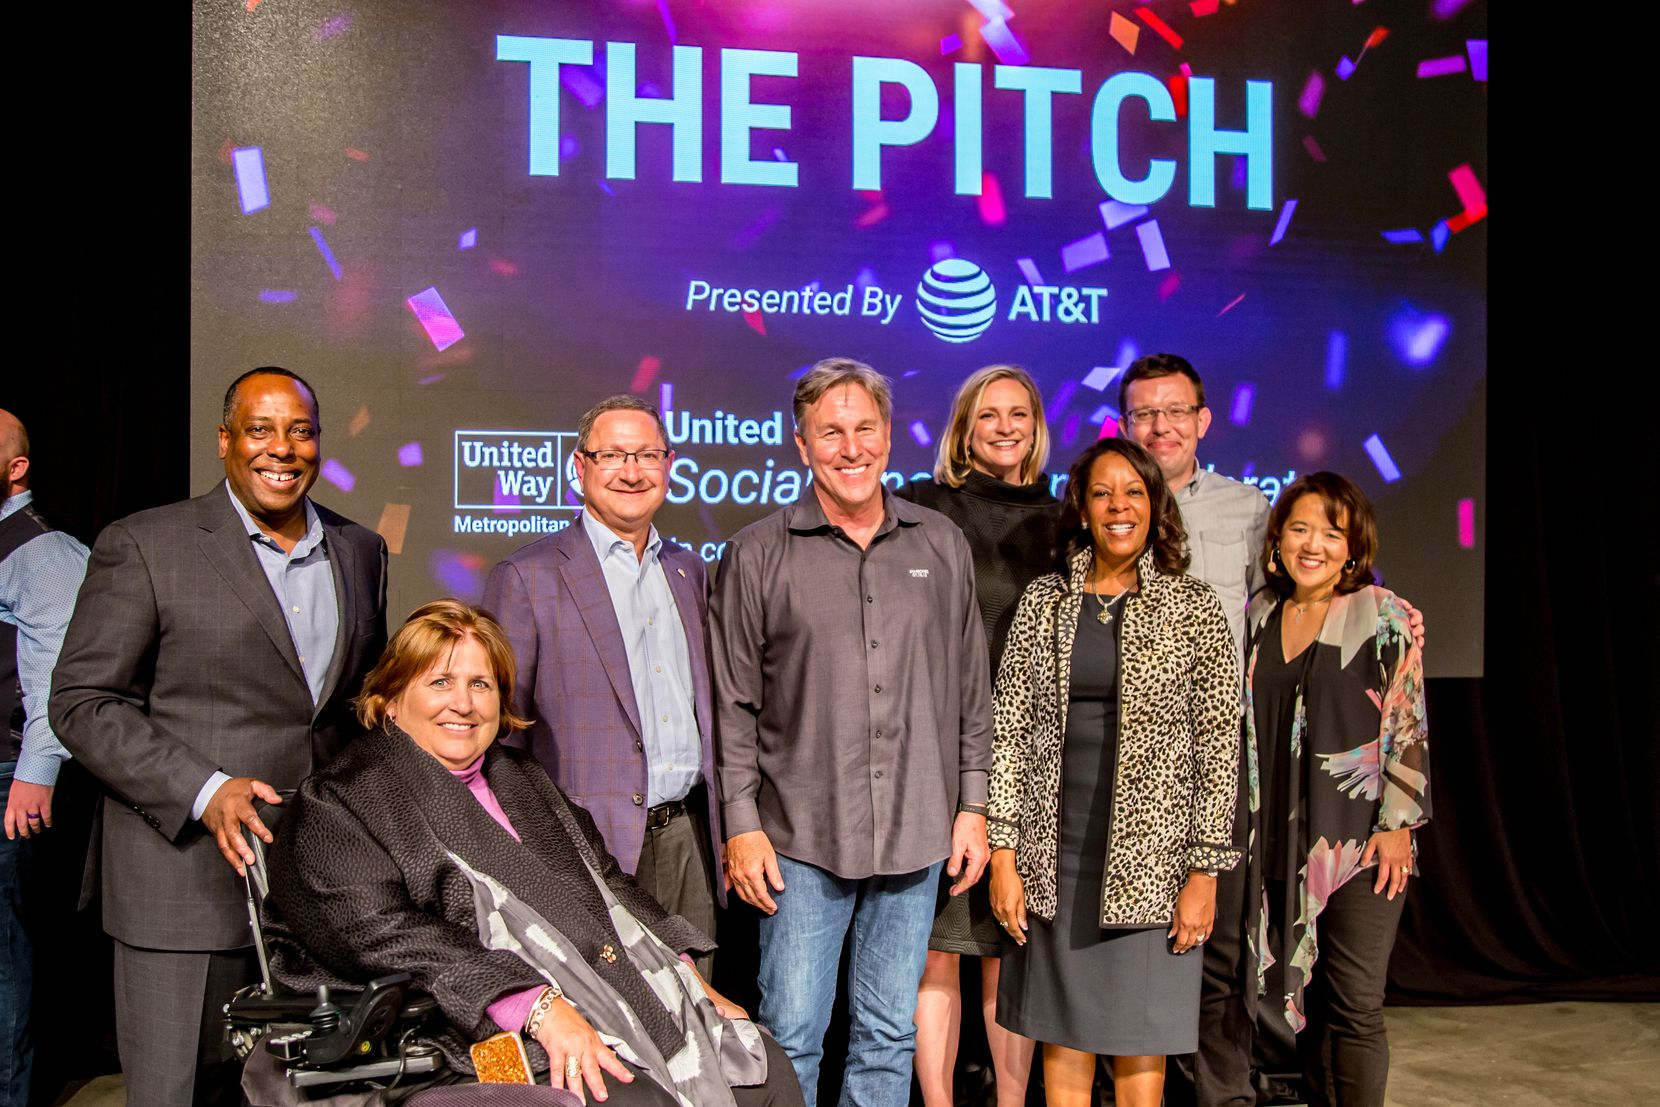 "Anne Chow (far right) emceed United Way of Metropolitan Dallas' ""The Pitch"" in April 2019, a competition that gave $225,000 to social startups. With her from left to right are Steven Williams, CEO of PepsiCo Foods North America; Mary Templeton, 2018-19 United Way campaign co-chair; Ken Hersh, CEO of the George W. Bush Presidential Center; Jack D. Furst, founder of Oak Stream Investors; Jennifer Sampson, United Way president and CEO; Sandra Phillips Rogers, chief legal officer, Toyota Motor North America; and Henry Timms, CEO of the Lincoln Center for the Performing Arts."